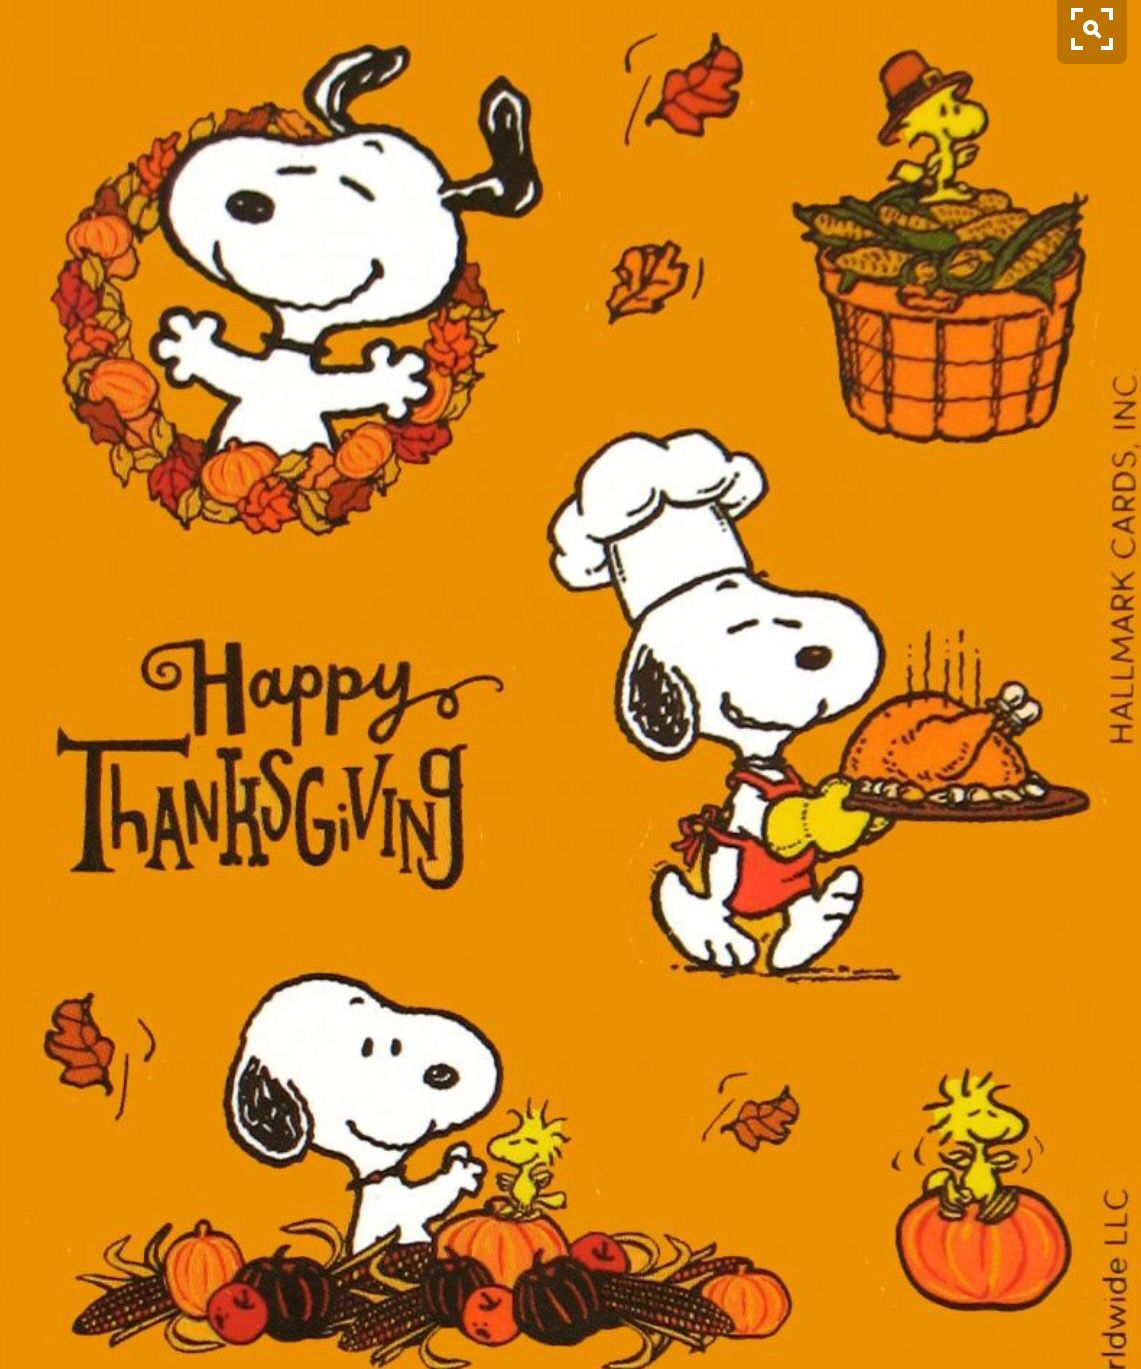 Snoopy is a great chef happy thanksgiving snoopy pinterest happy thanksgiving kristyandbryce Gallery